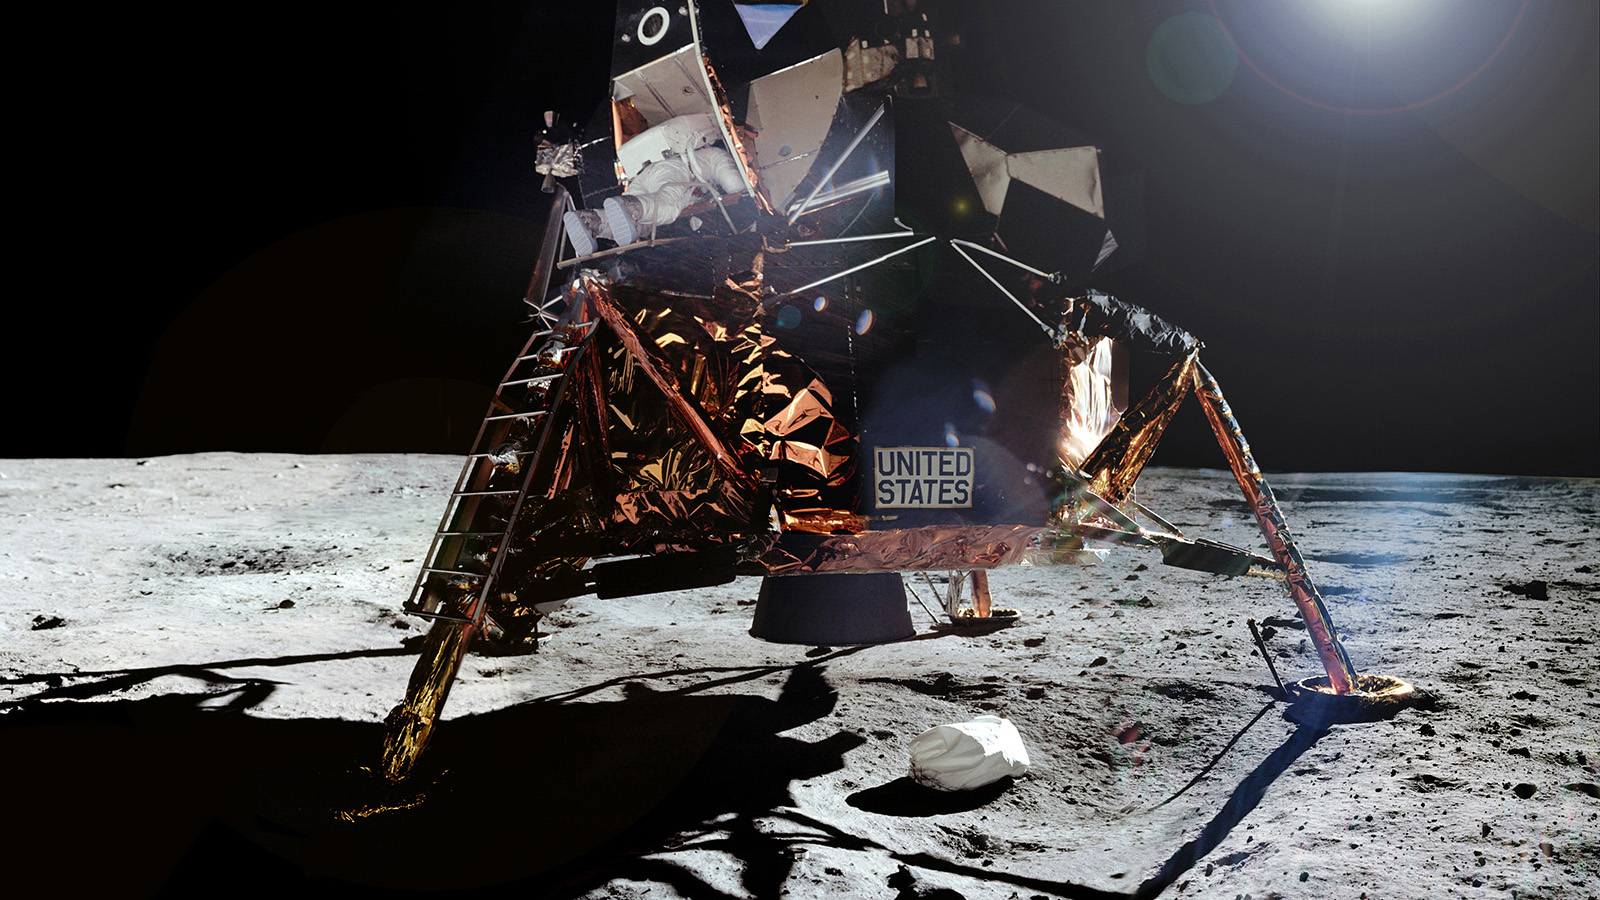 Composite image showing the Apollo 11 command module on the Moon.